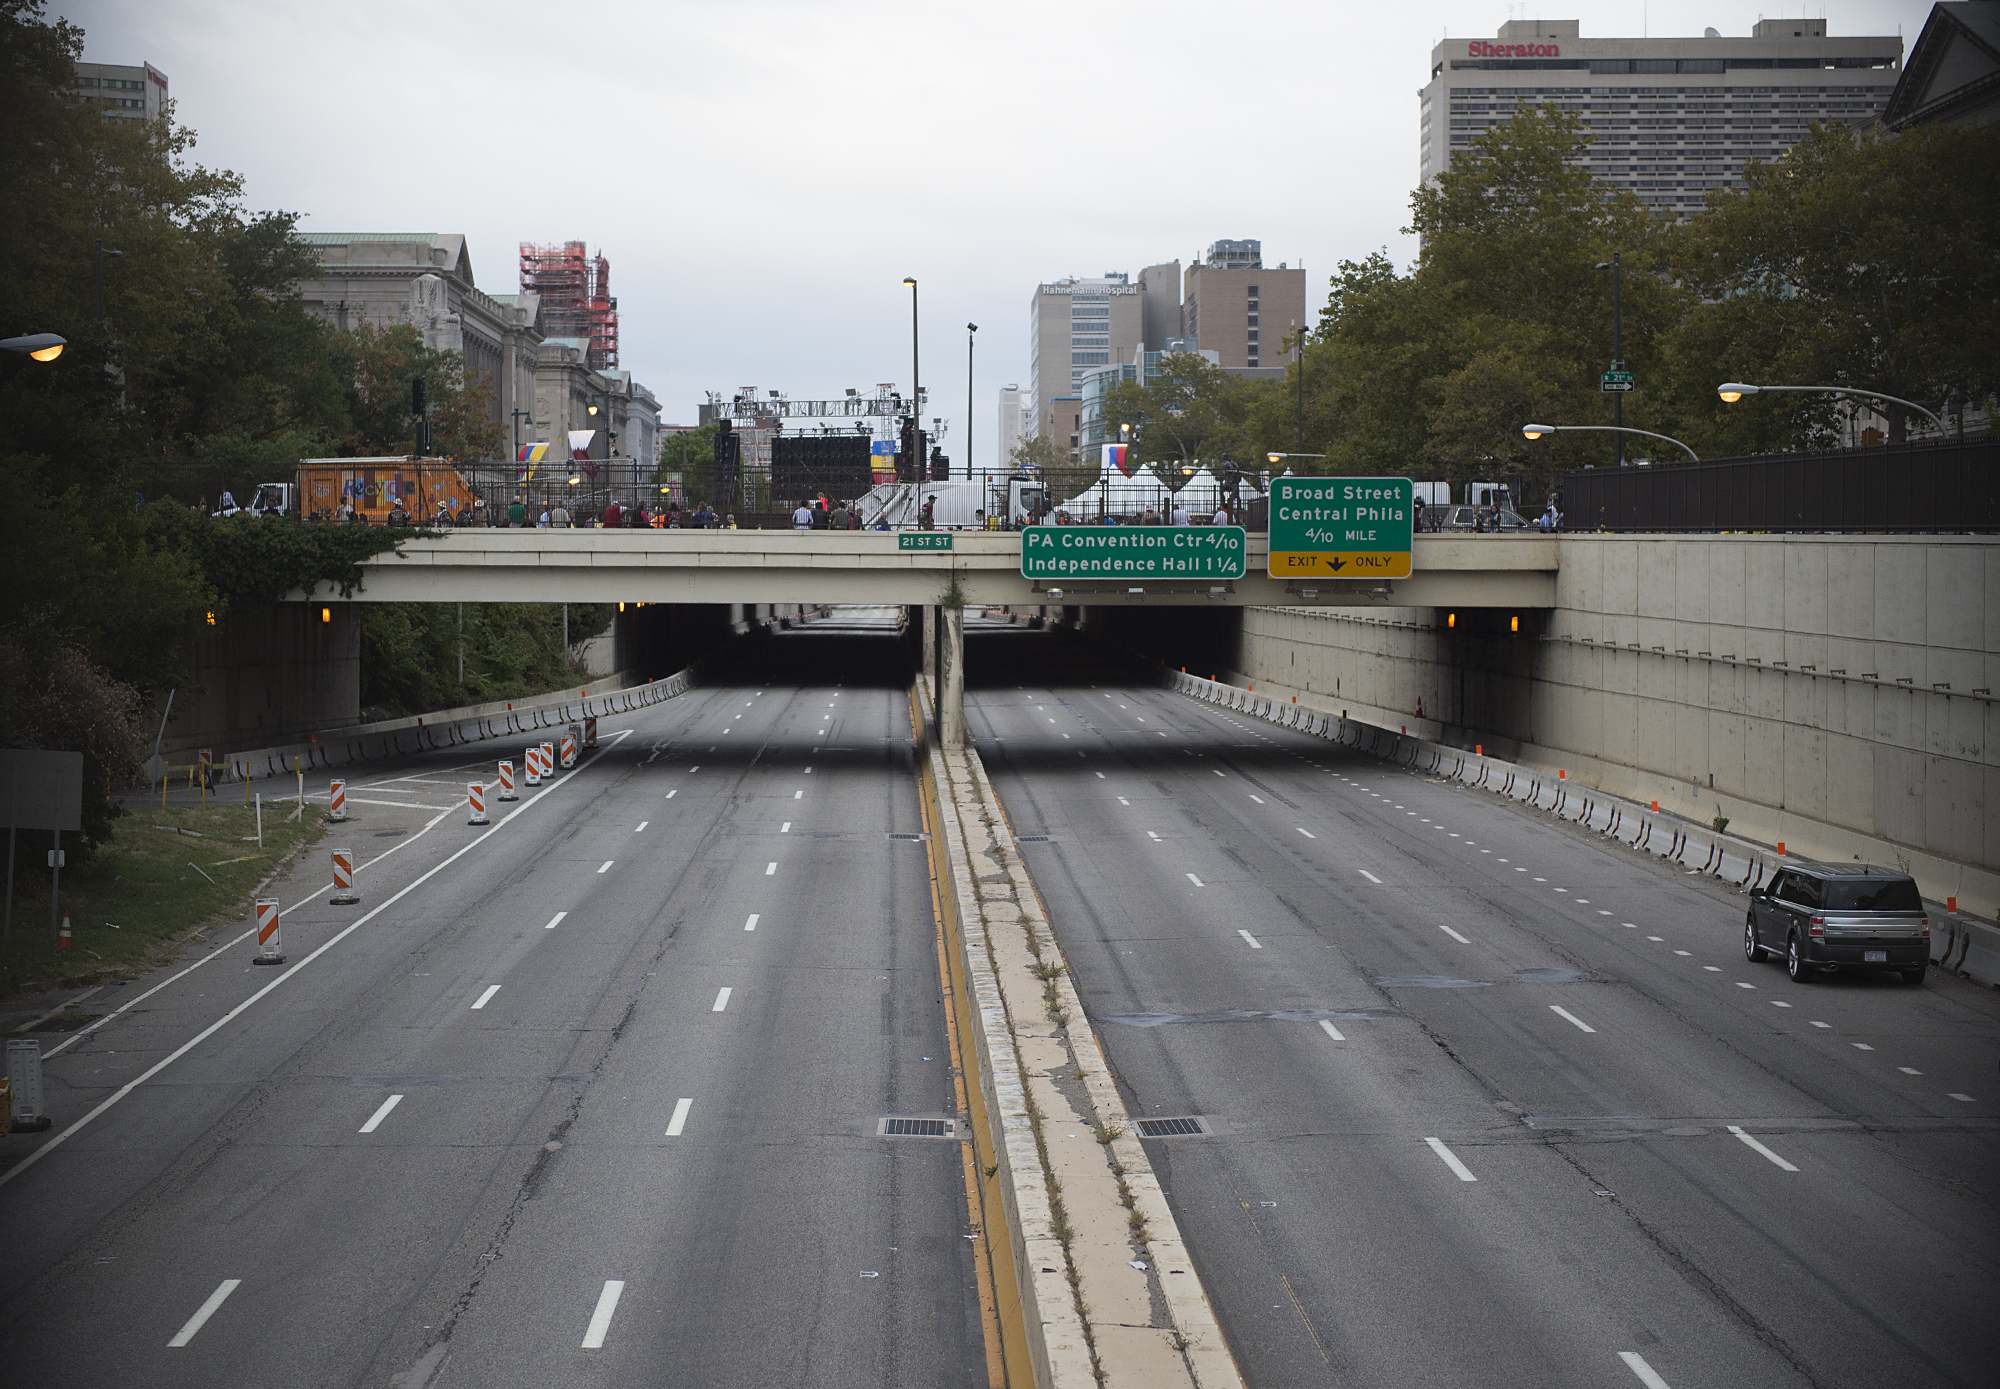 An empty Vine Street Expressway remains closed as Pope Francis' Mass nears completion on the Ben Franklin Parkway on September 27, 2015.